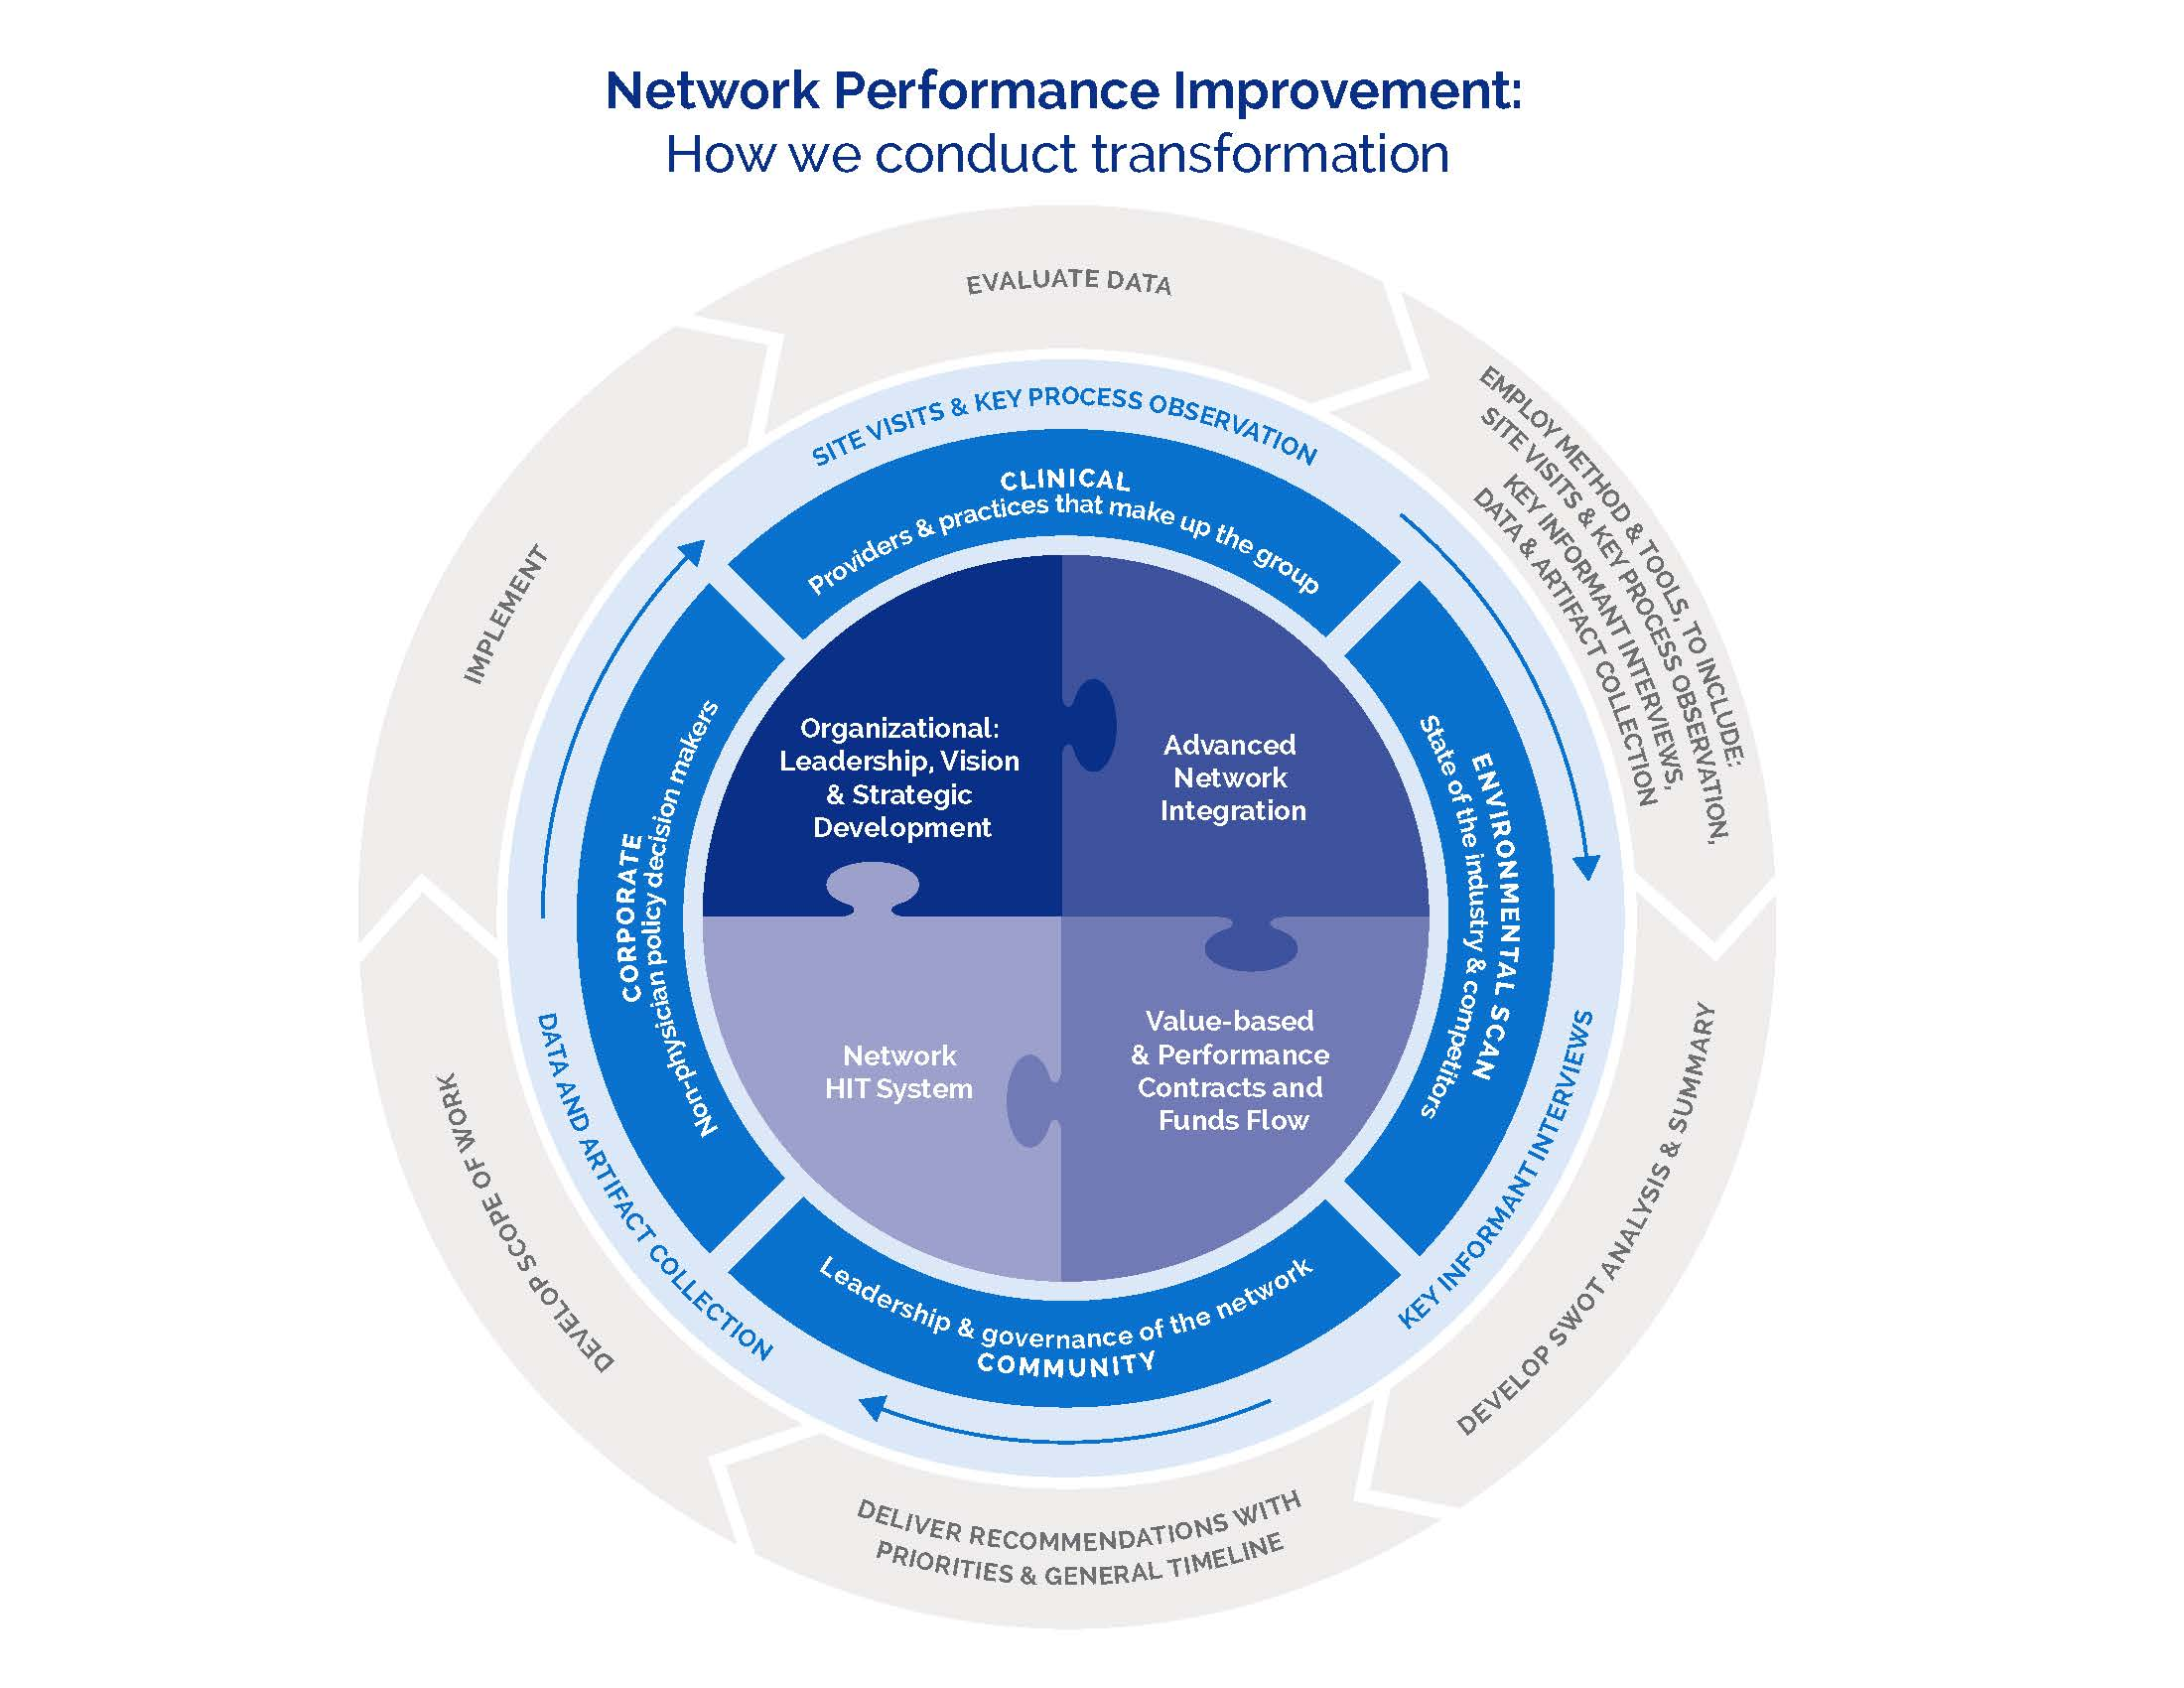 Network Performance Improvement: How we conduct transformation